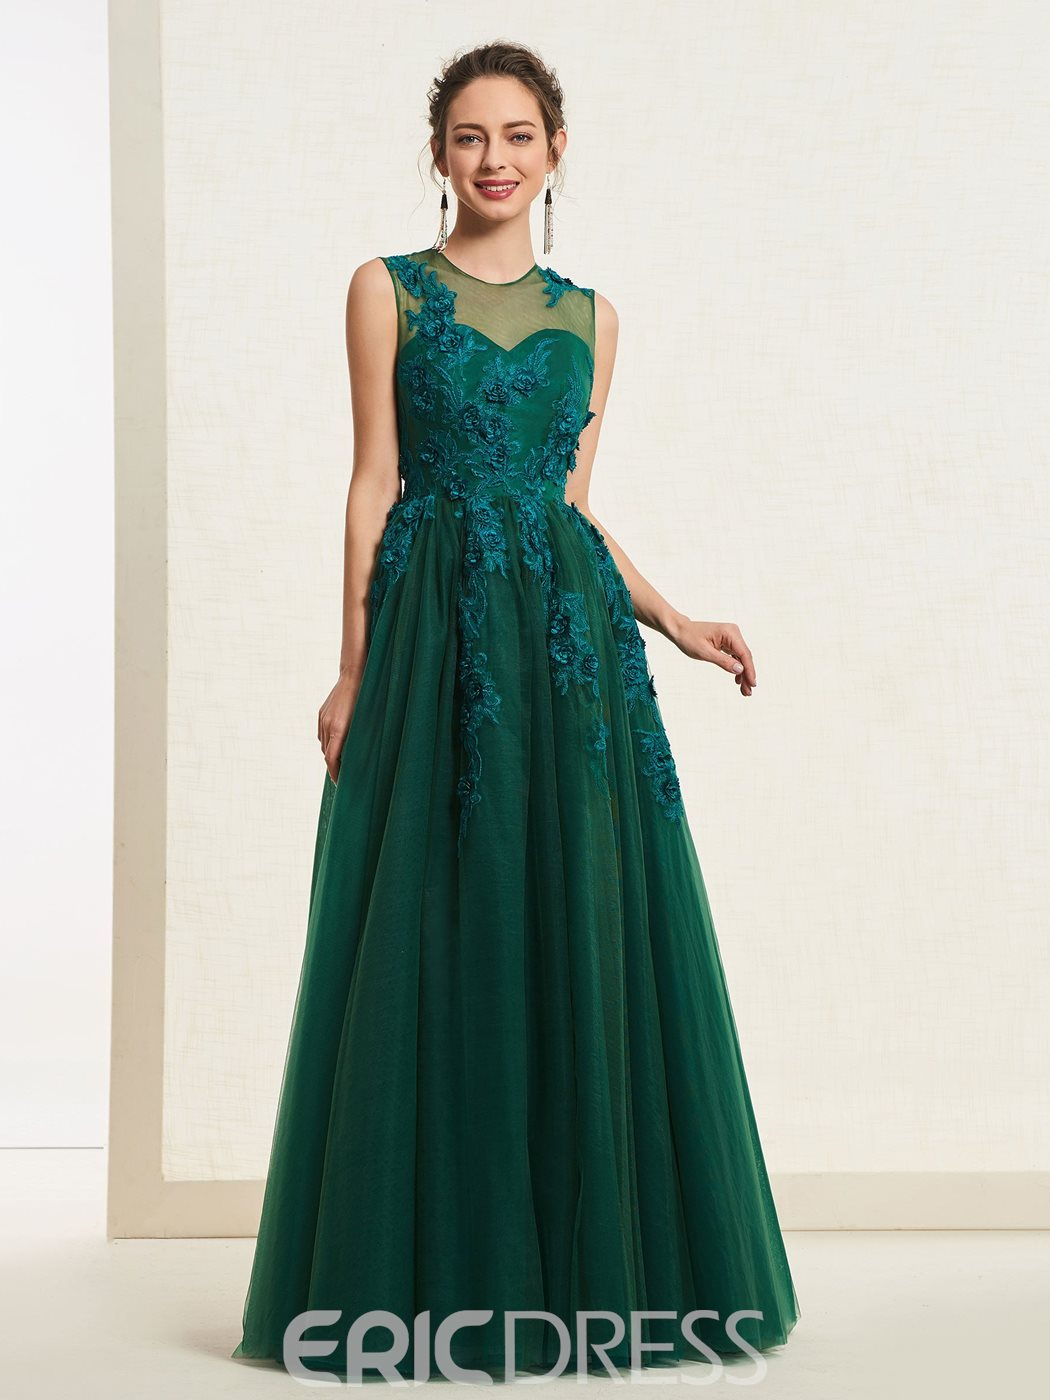 Ericdress A-Line Scoop Appliques Prom Dress 2019